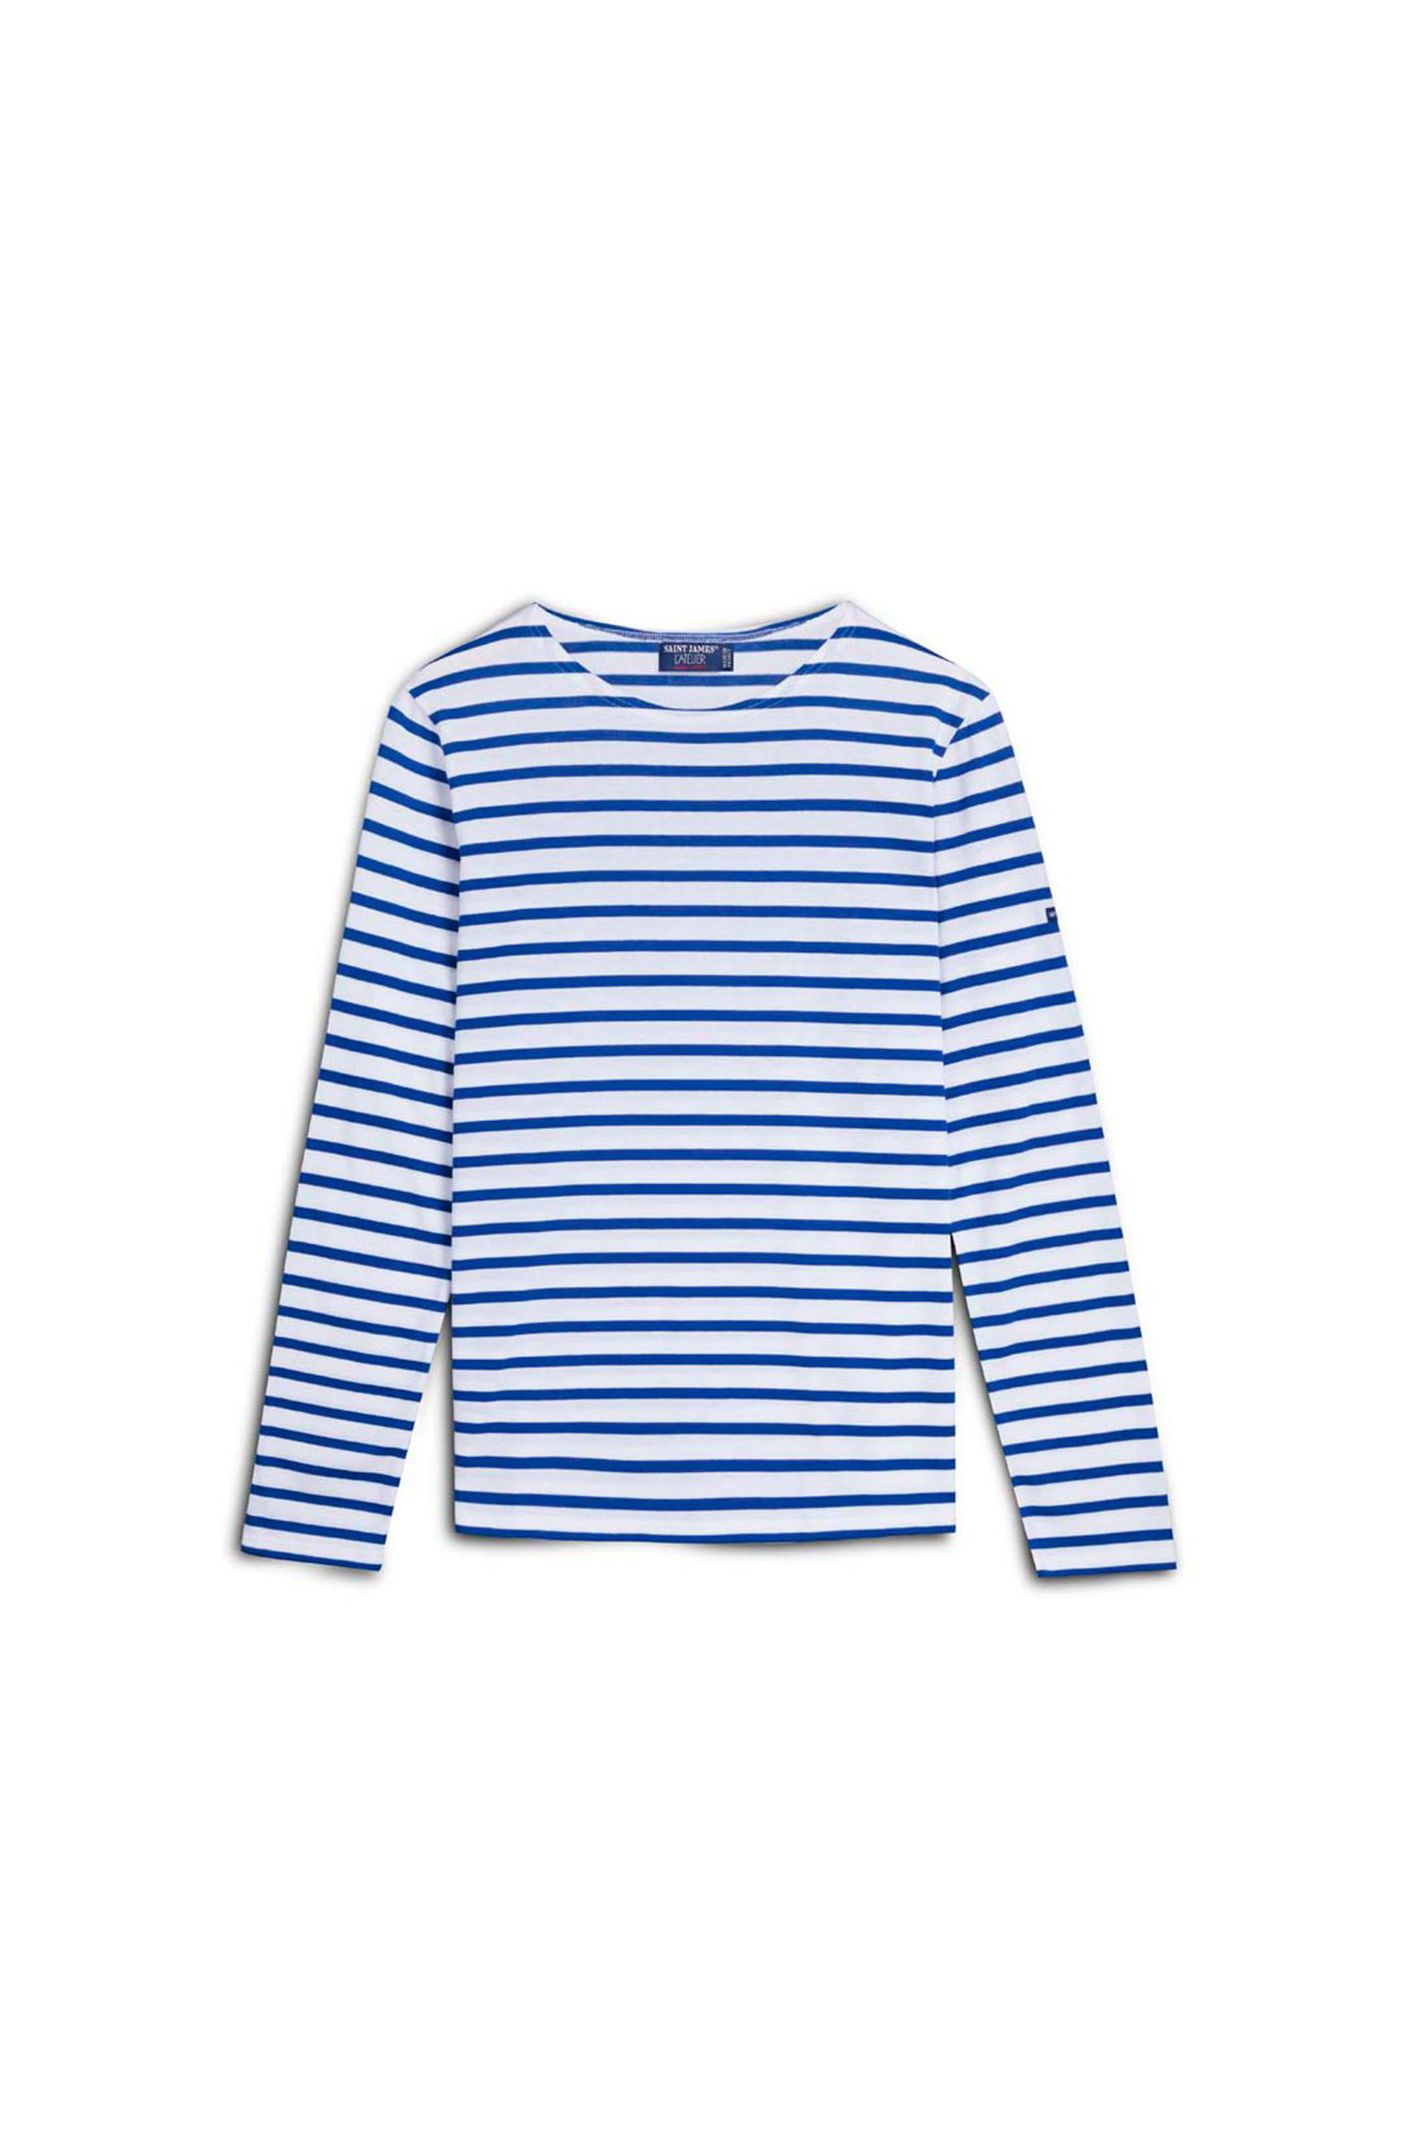 Best Breton Tops 11 Striped Styles To Buy Now And Wear Forever